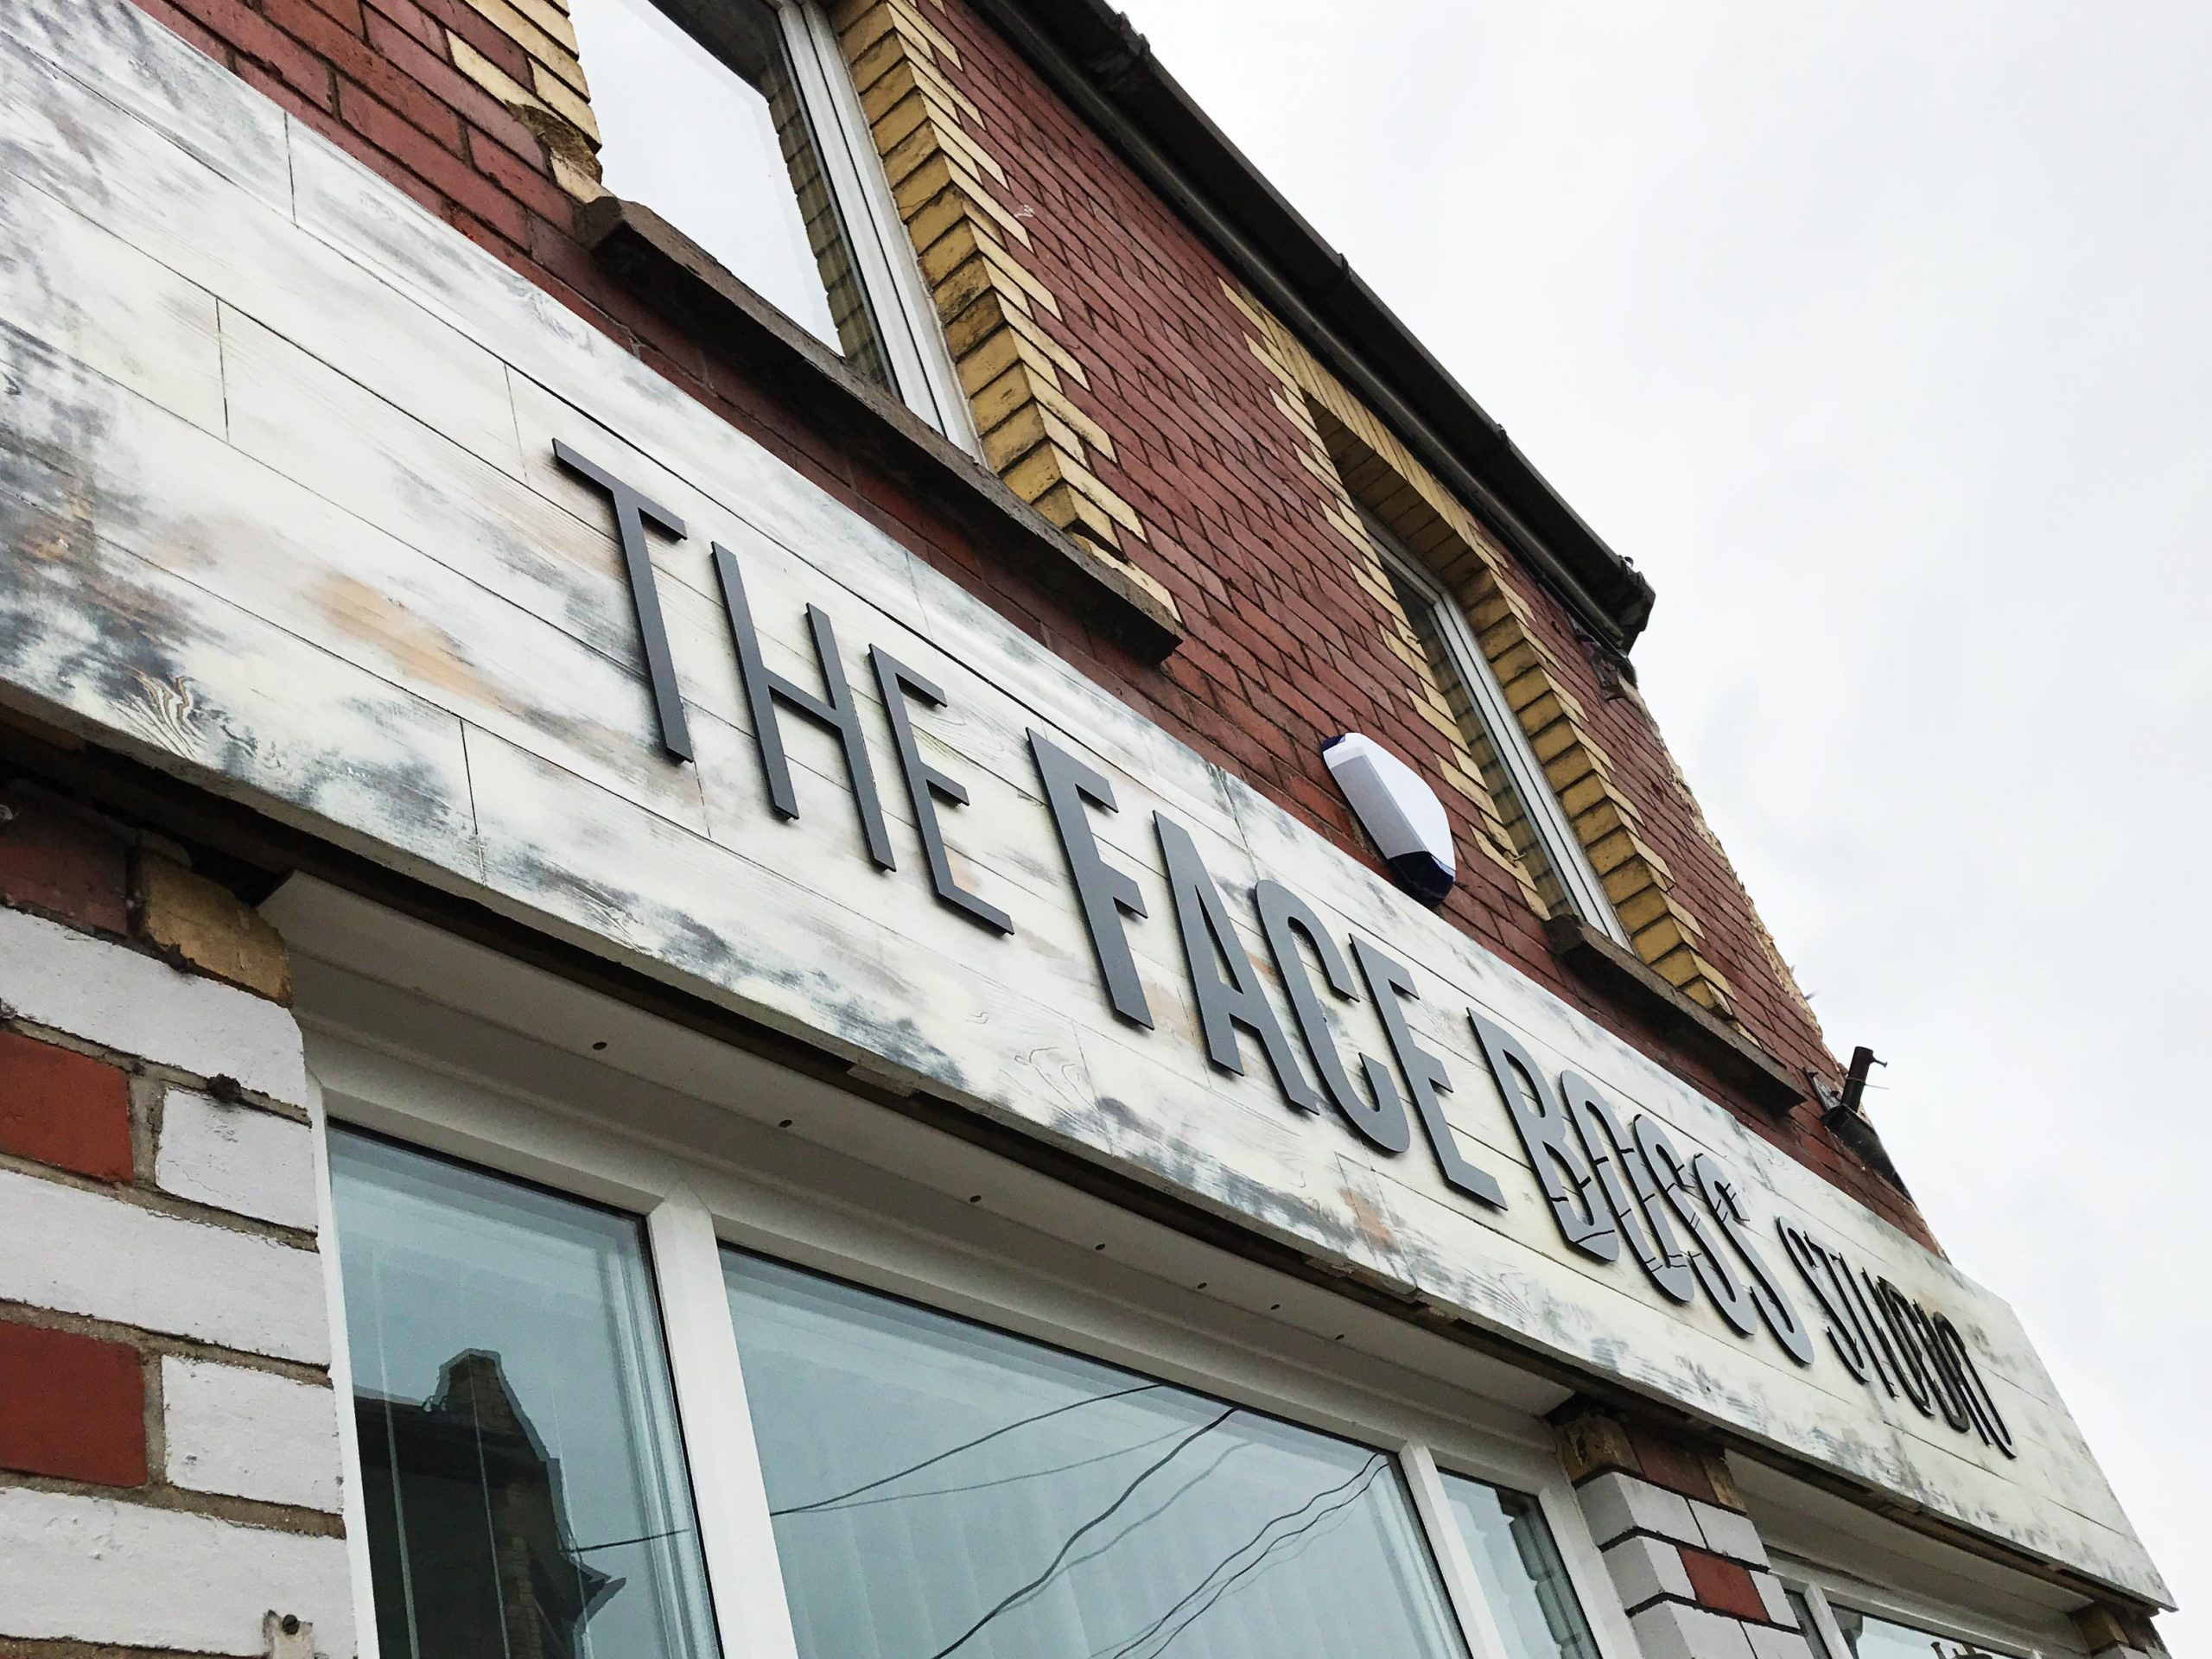 Blitz Media Signs Fascia Wooden Sign Stand Off Acrylic Letters The Face Boss Studio